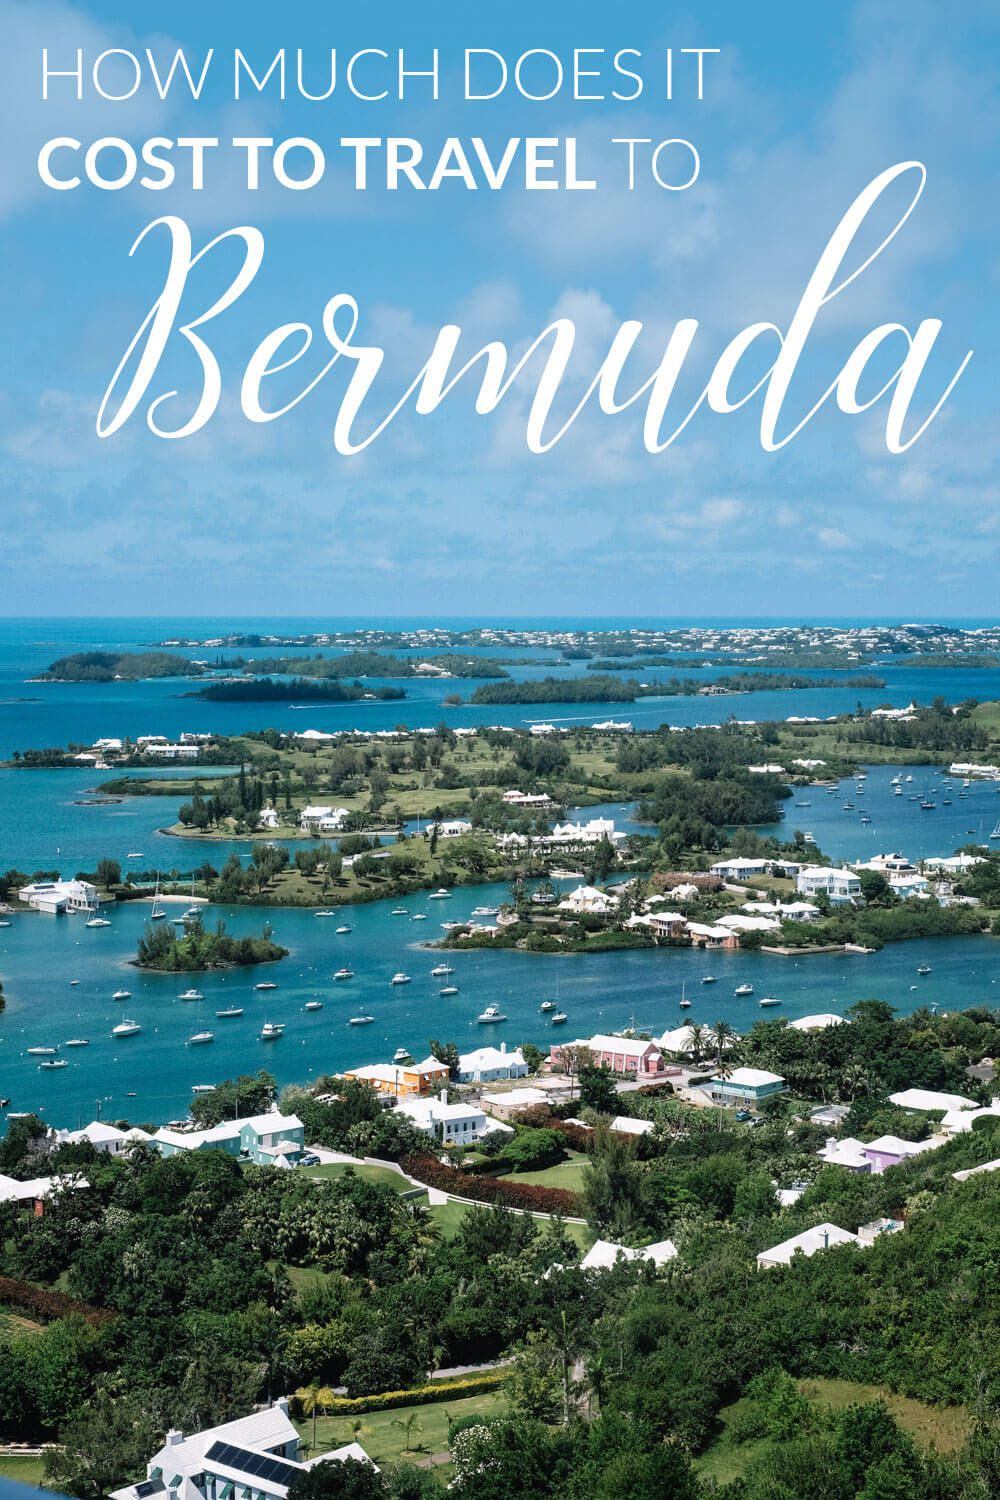 Are you traveling to Bermuda? Need to know how much money you may spent on accommodation / hotels / Airbnbs, food, alcohol, scuba diving, scooter rentals, souvenirs, transportation / taxis / buses, and more? Here is a complete breakdown of a 1 week trip to Bermuda for two adults. The trip was on a small budget and can be used as a starting point for your own vacation to Bermuda!